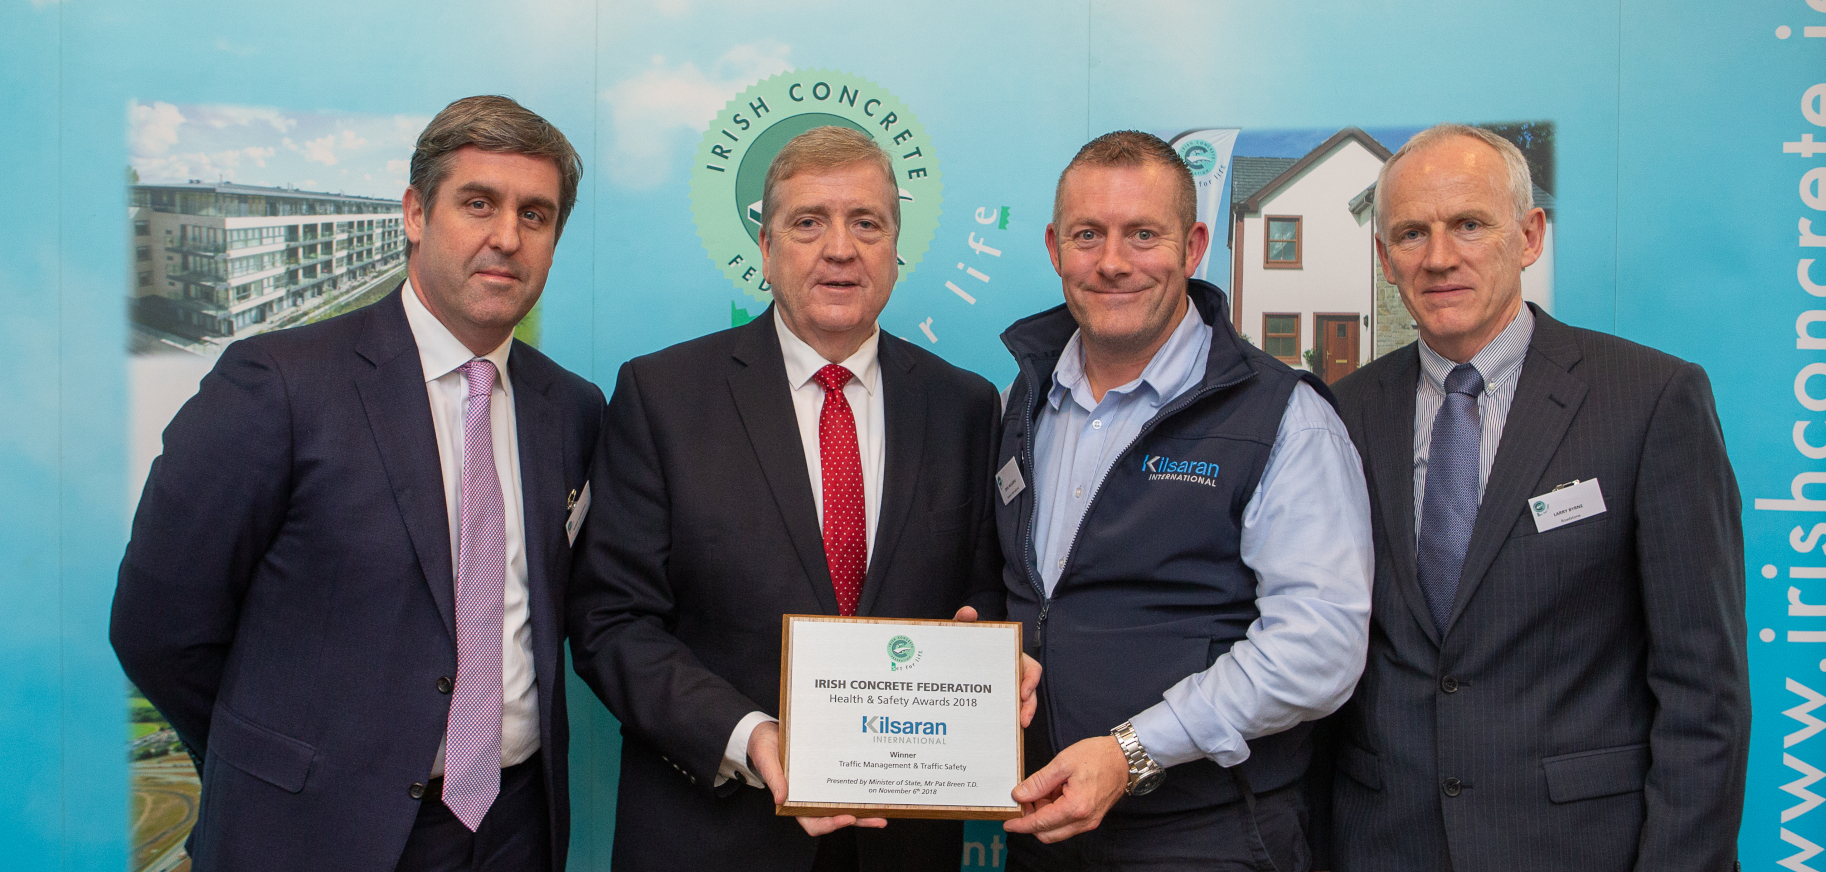 Kilsaran Wins 2 Awards at Irish Concrete Federation Health & Safety Awards 2018